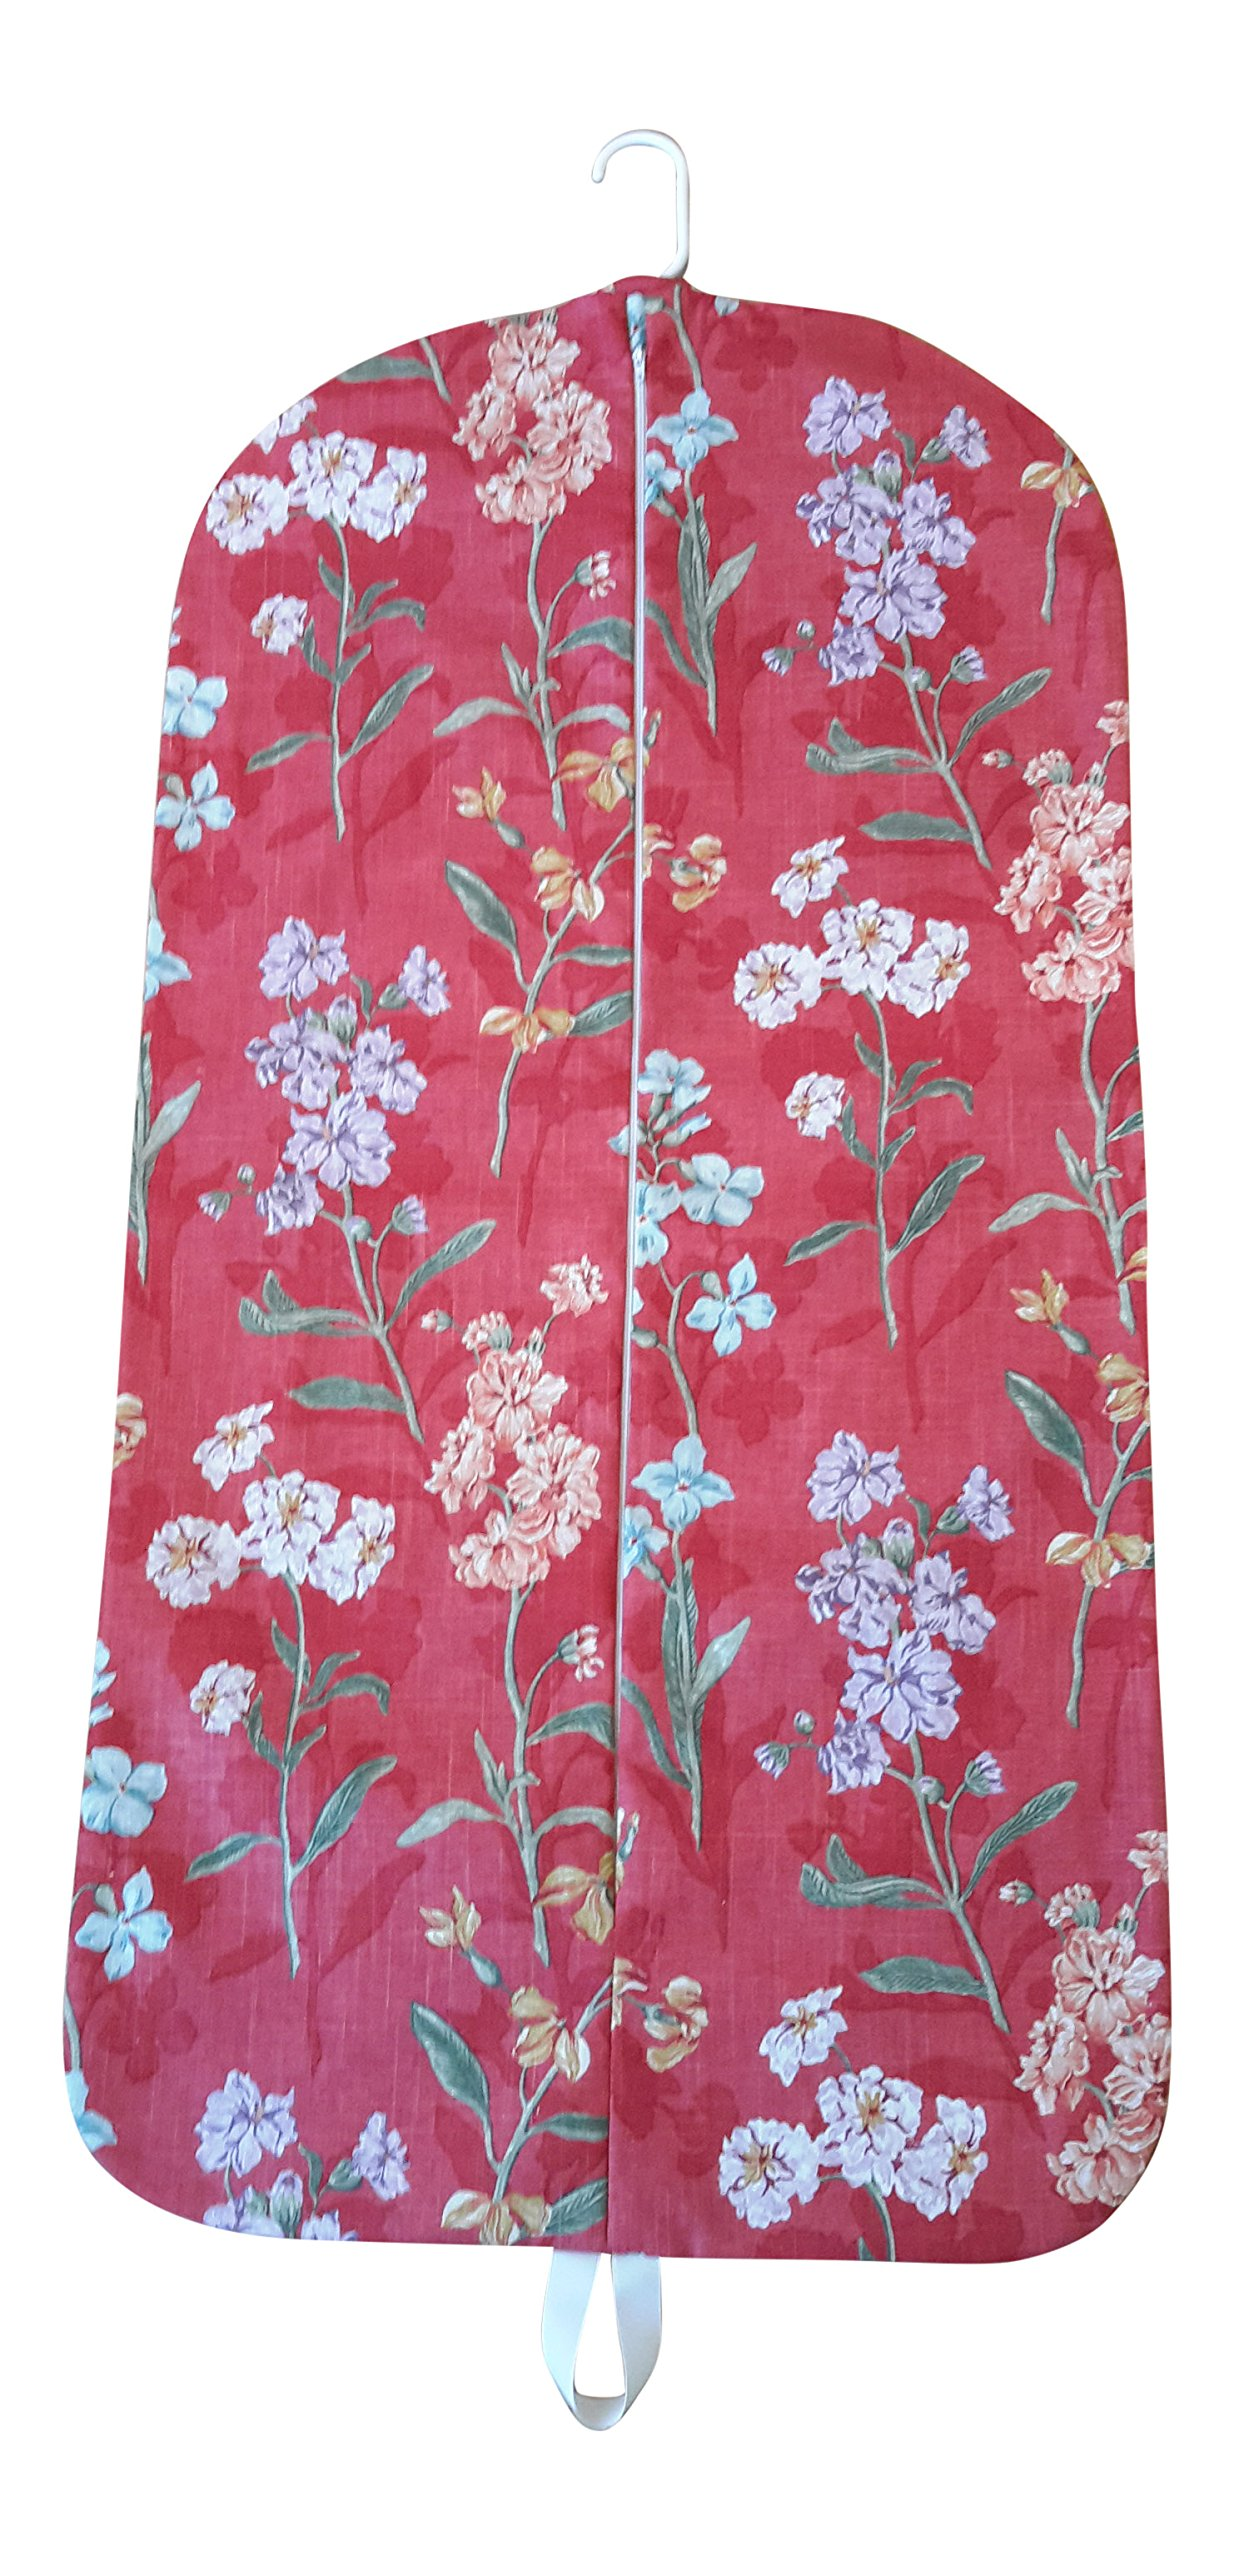 Carry It Well Women's Red Floral Hanging Garment Bag